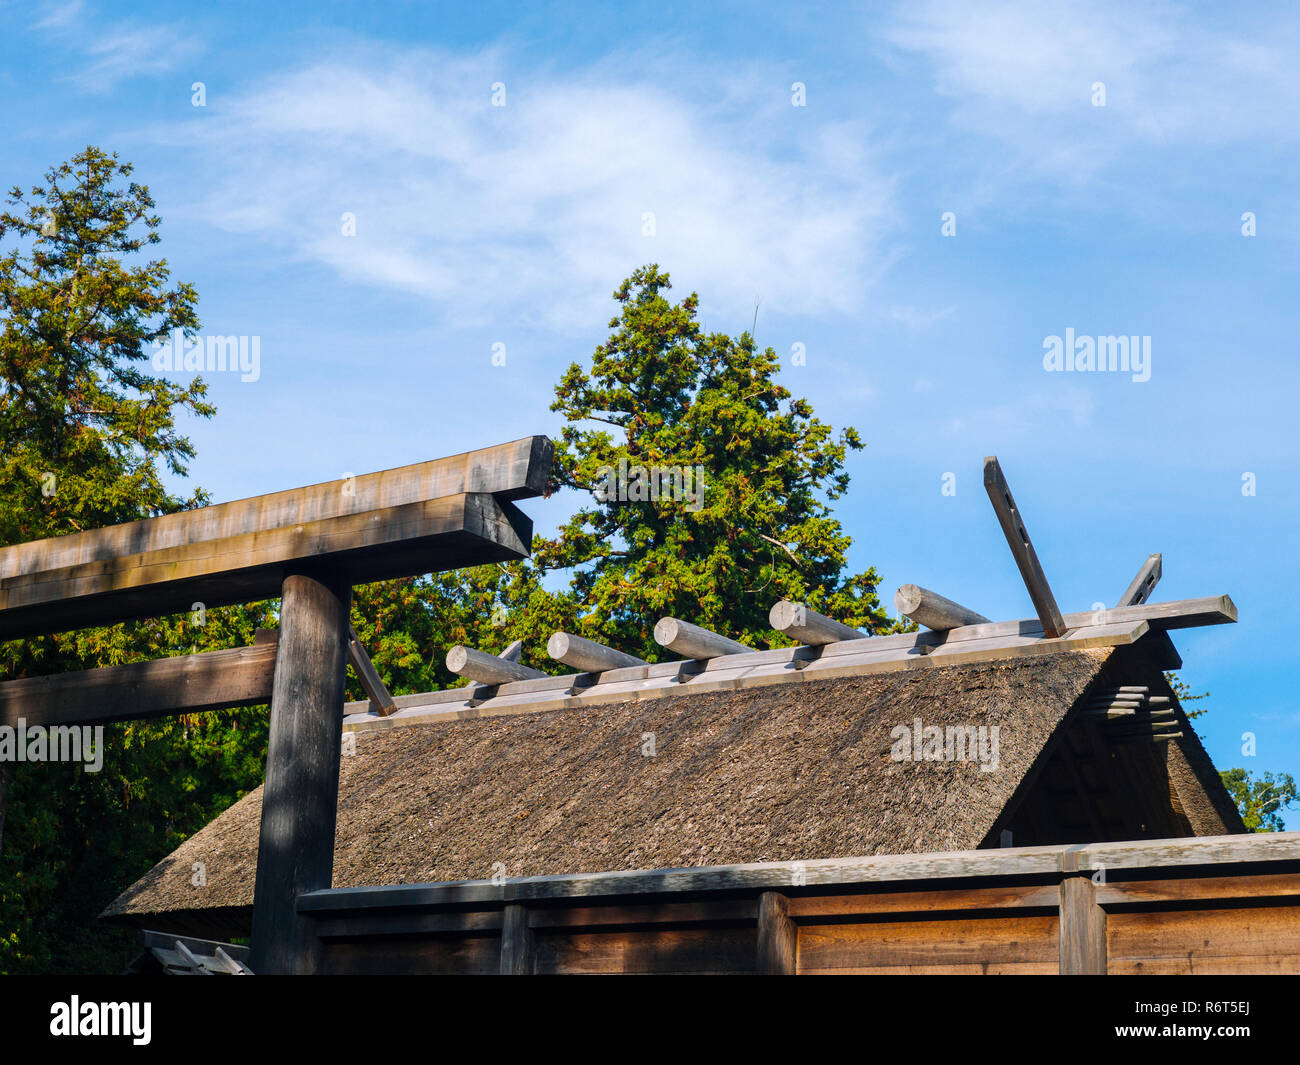 Ise Grand Shrine, Mie Prefecture, Japan: View of the Outer Shrine (Geku) - Stock Image